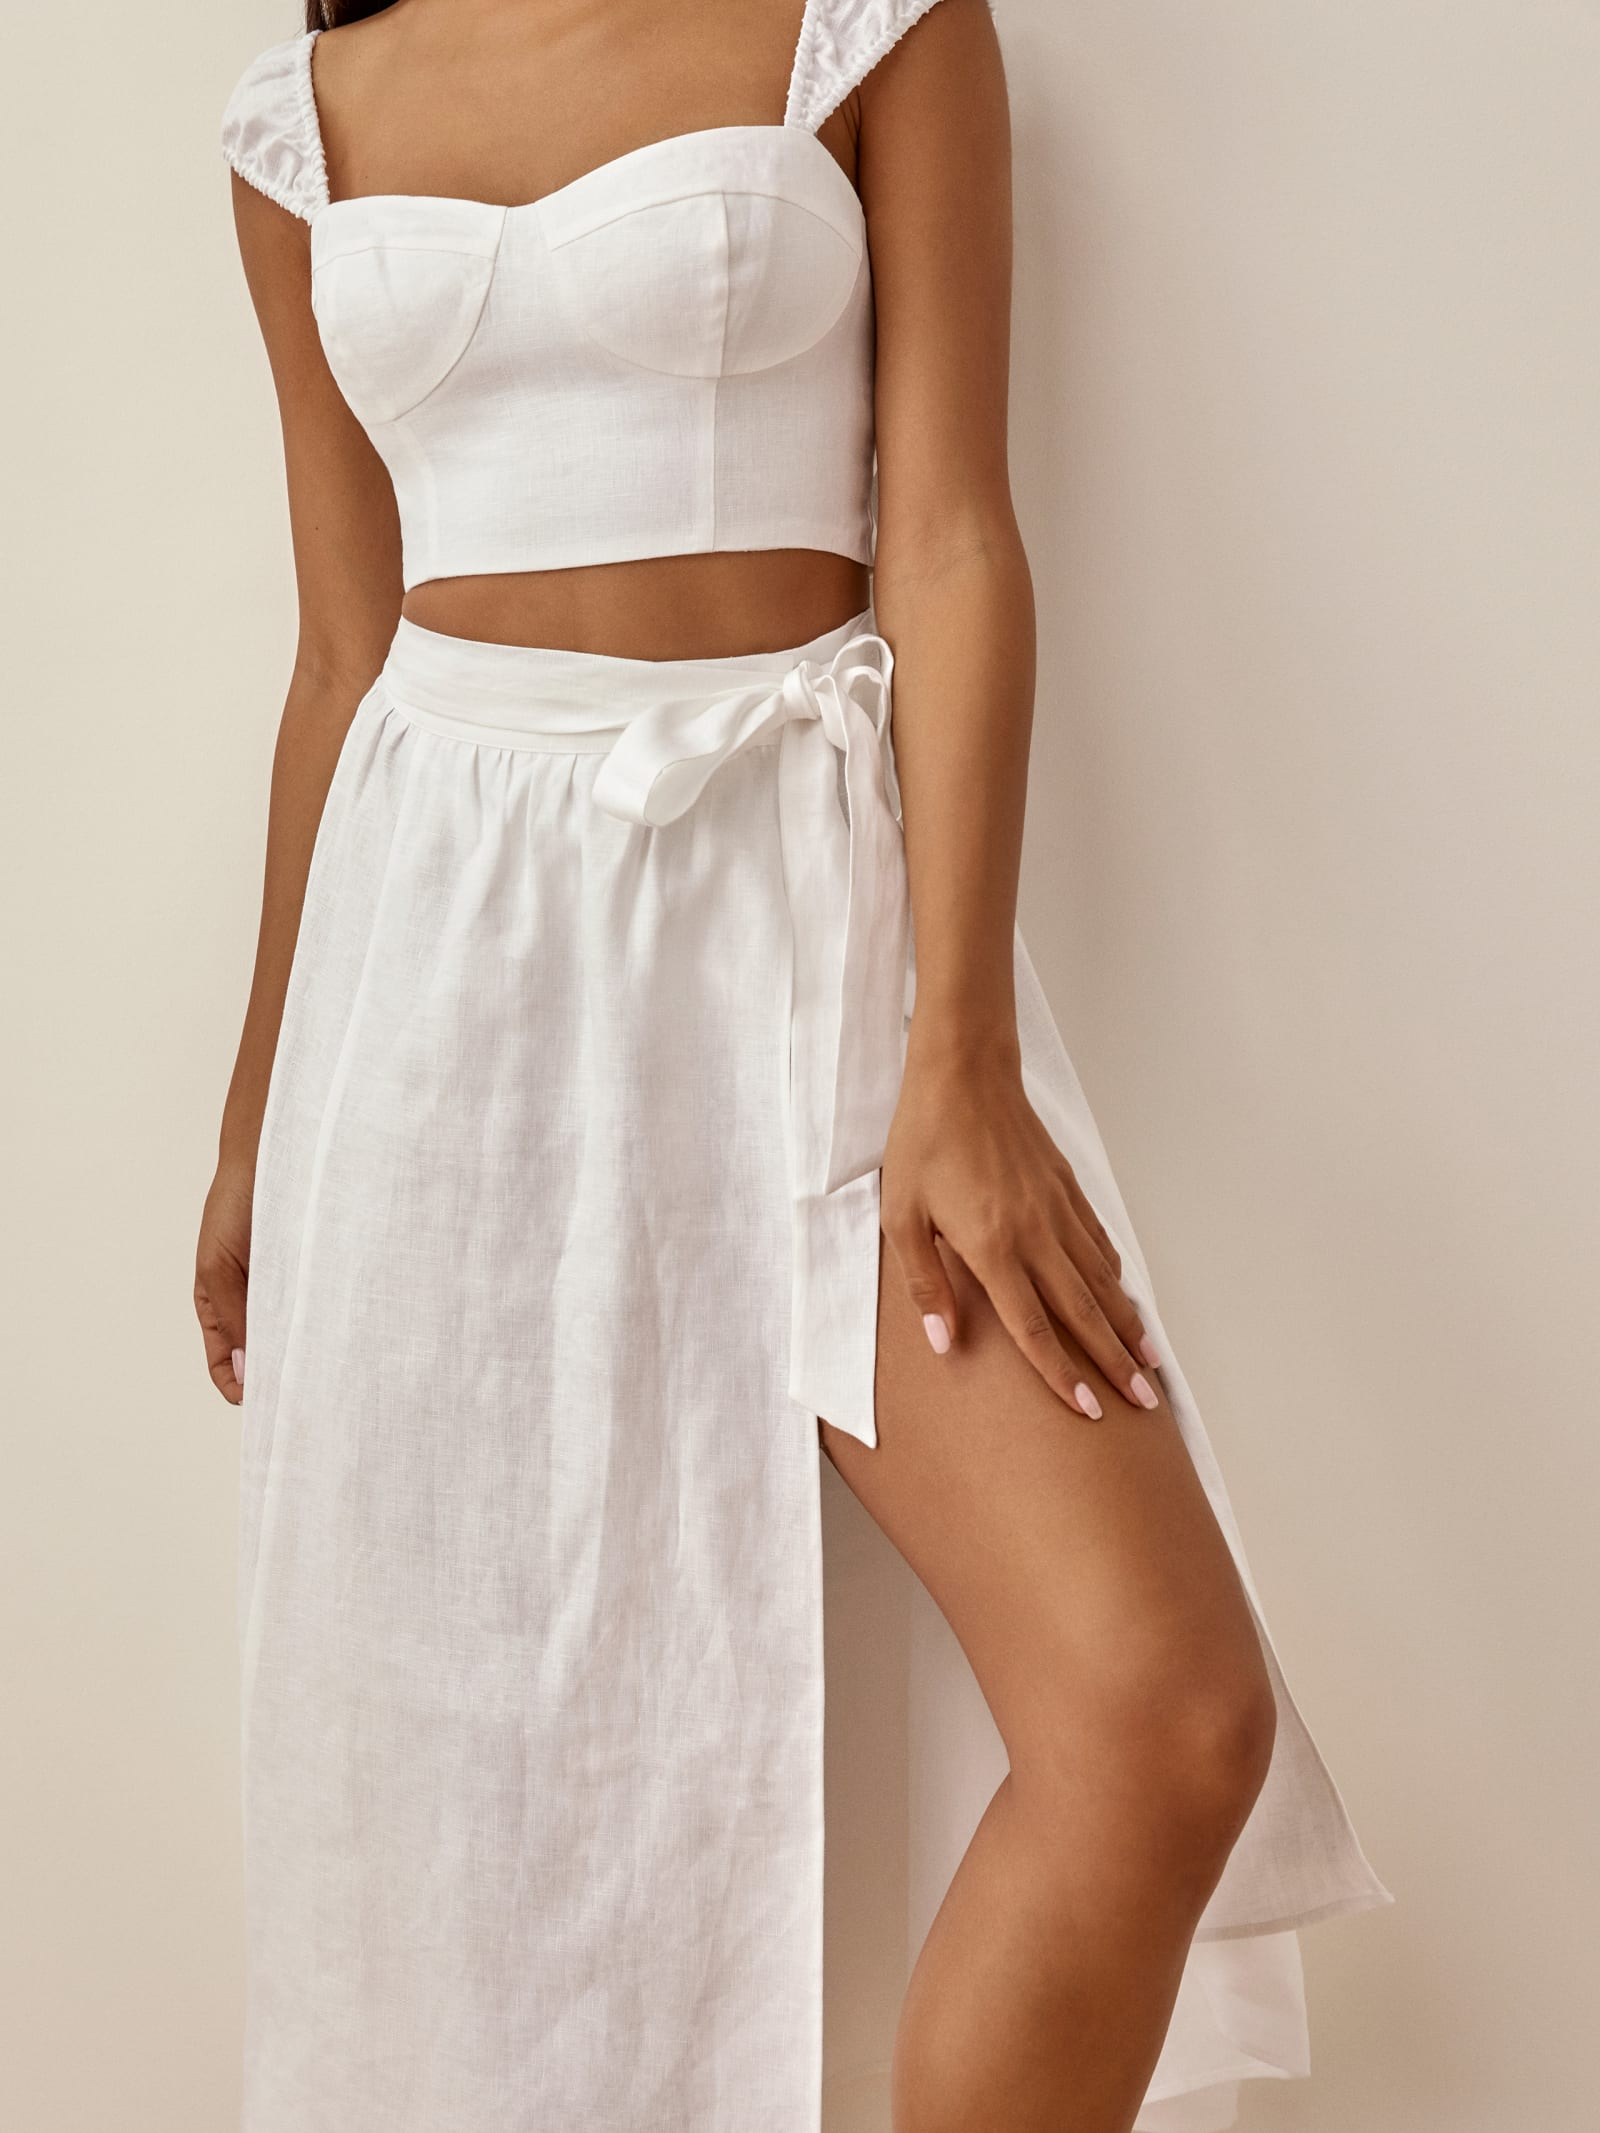 Clyde Linen Two Piece   Reformation